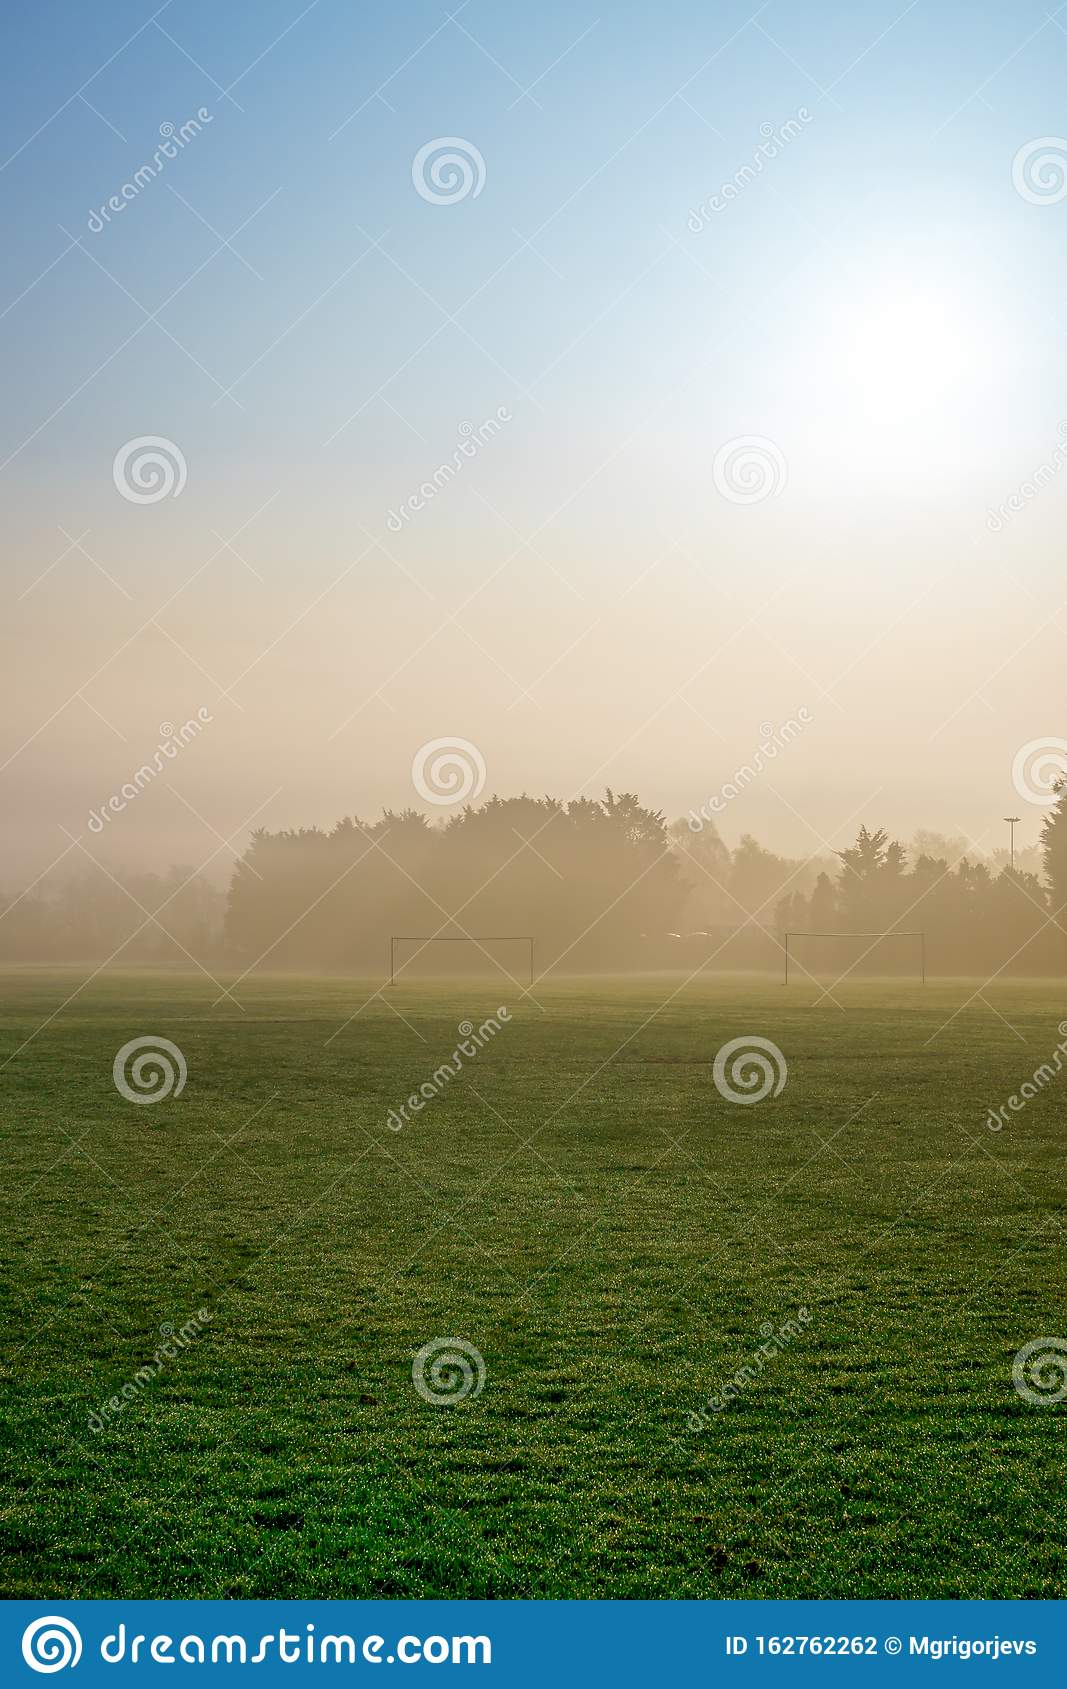 Early Morning Fog And Sunrise On Football Field With